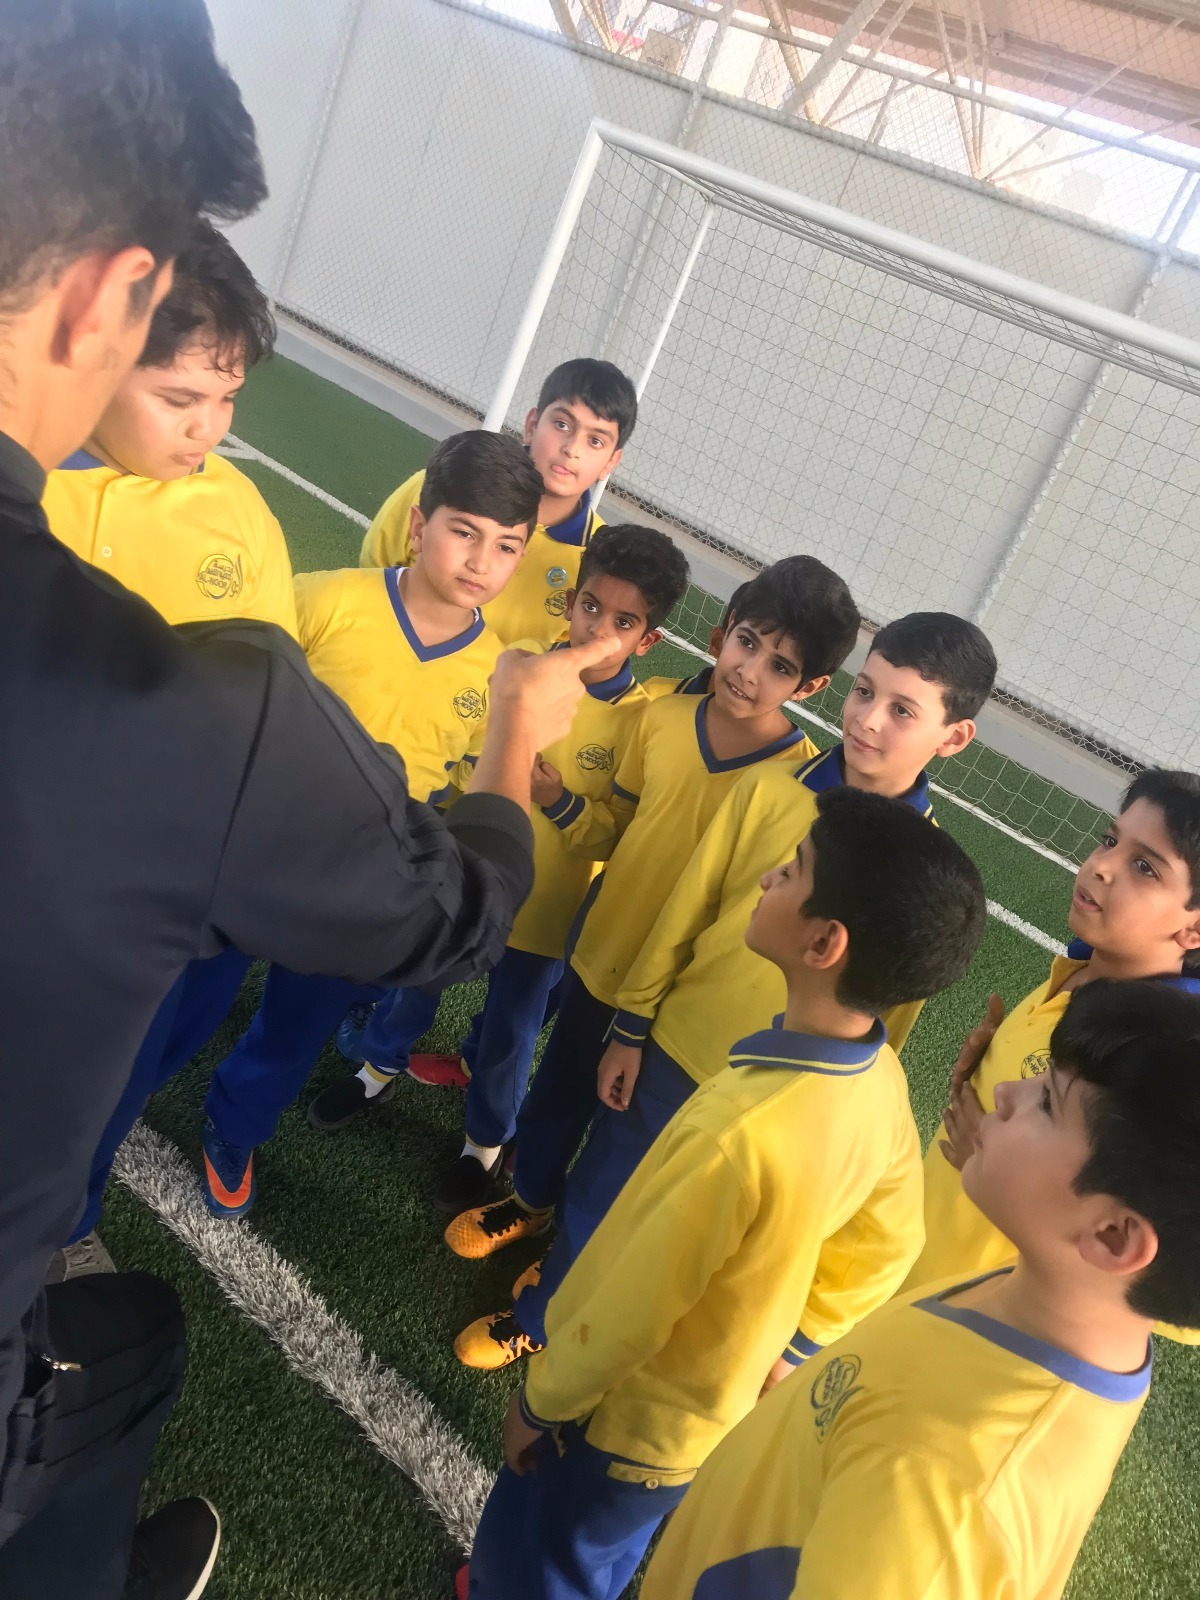 Soccer win for under 10 Al-Noor against AUS 17-0! - Image 2